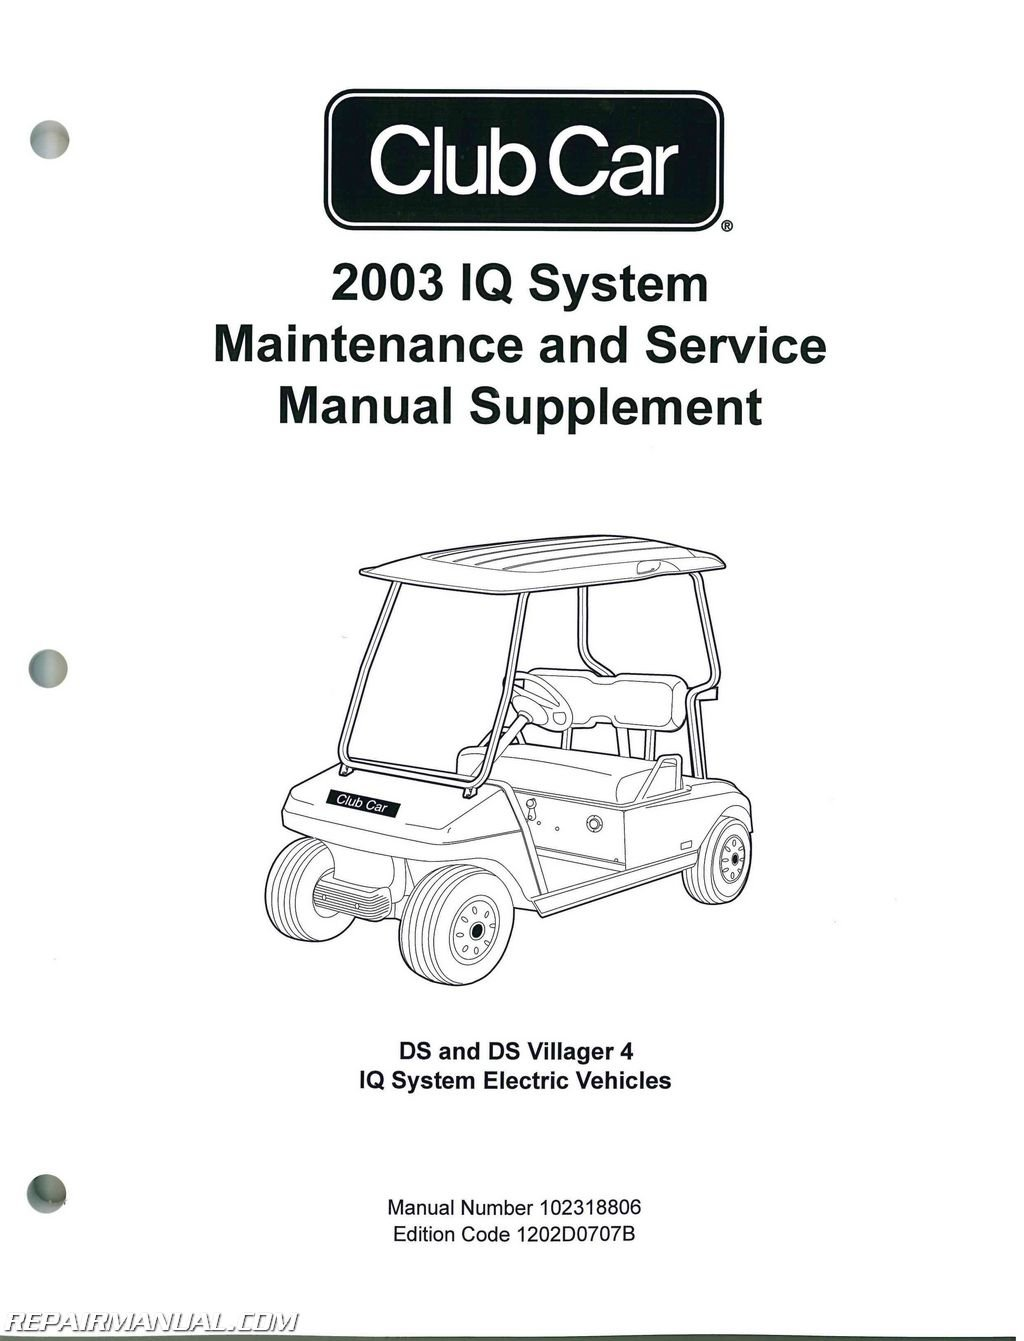 mnl 5568  club car villager 4 service manual 2019 ebook Club Car Parts 61swFsbOF9L